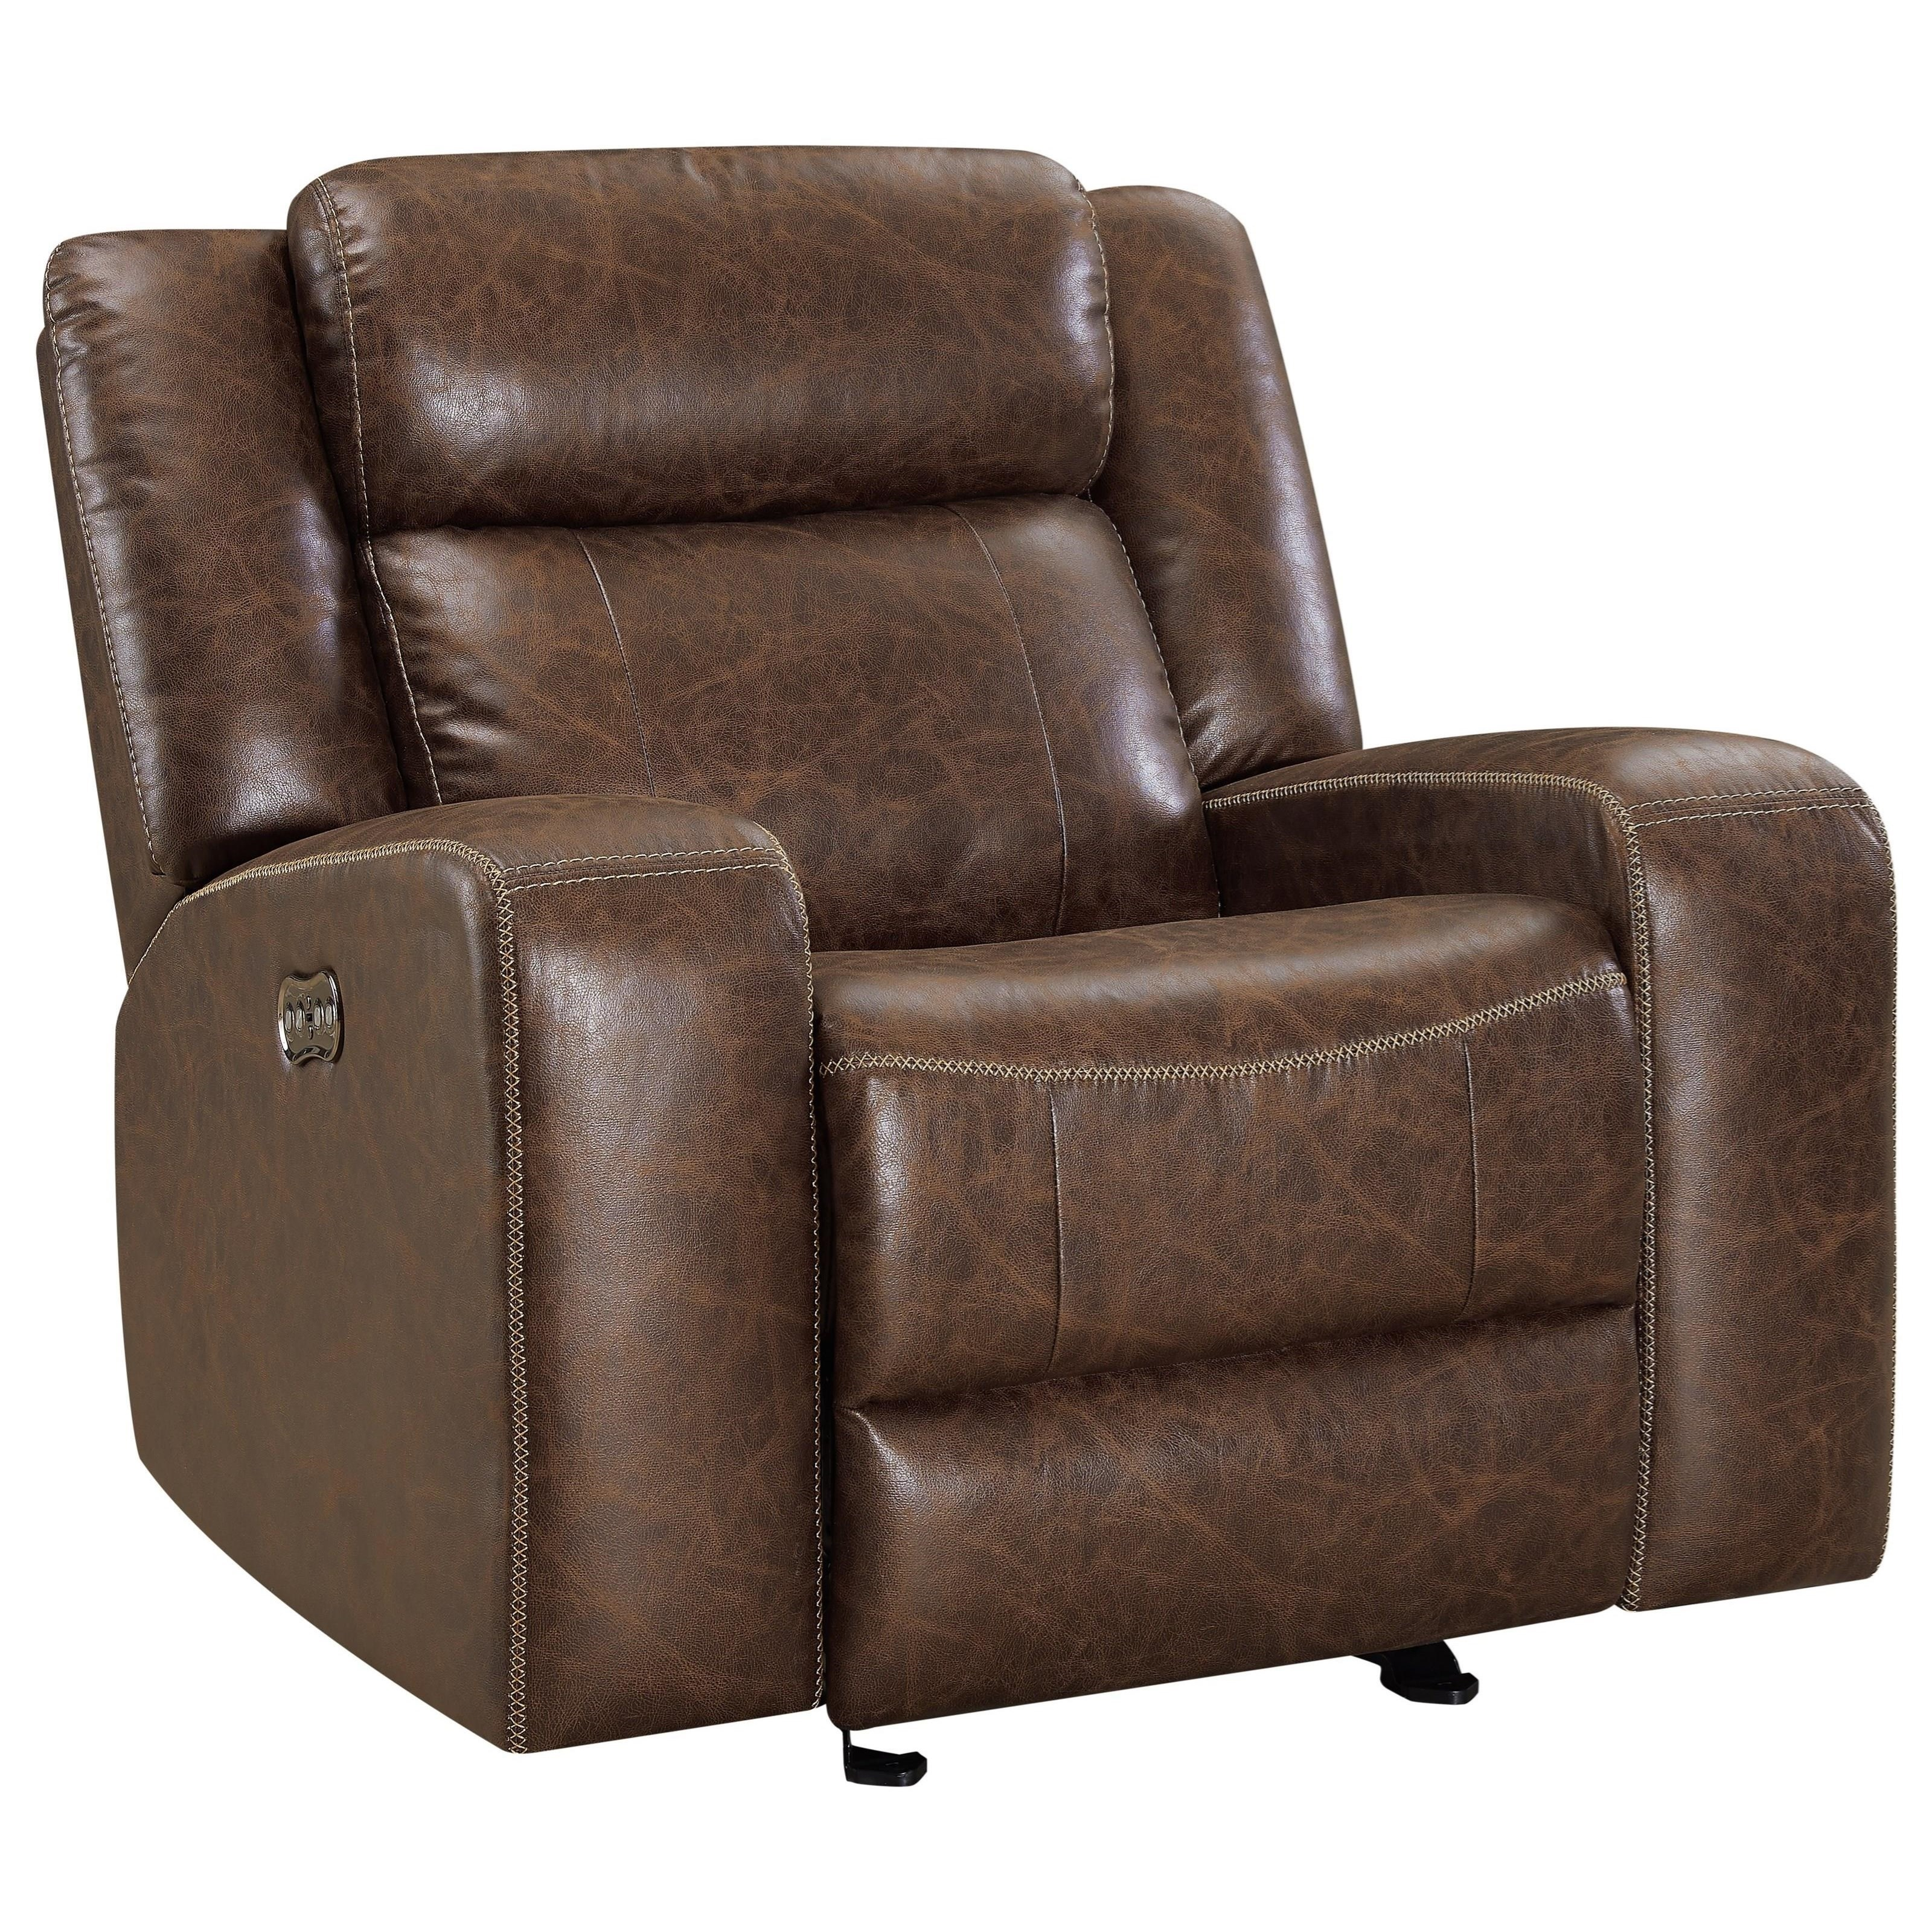 Atticus Glider Recliner by New Classic at Rife's Home Furniture